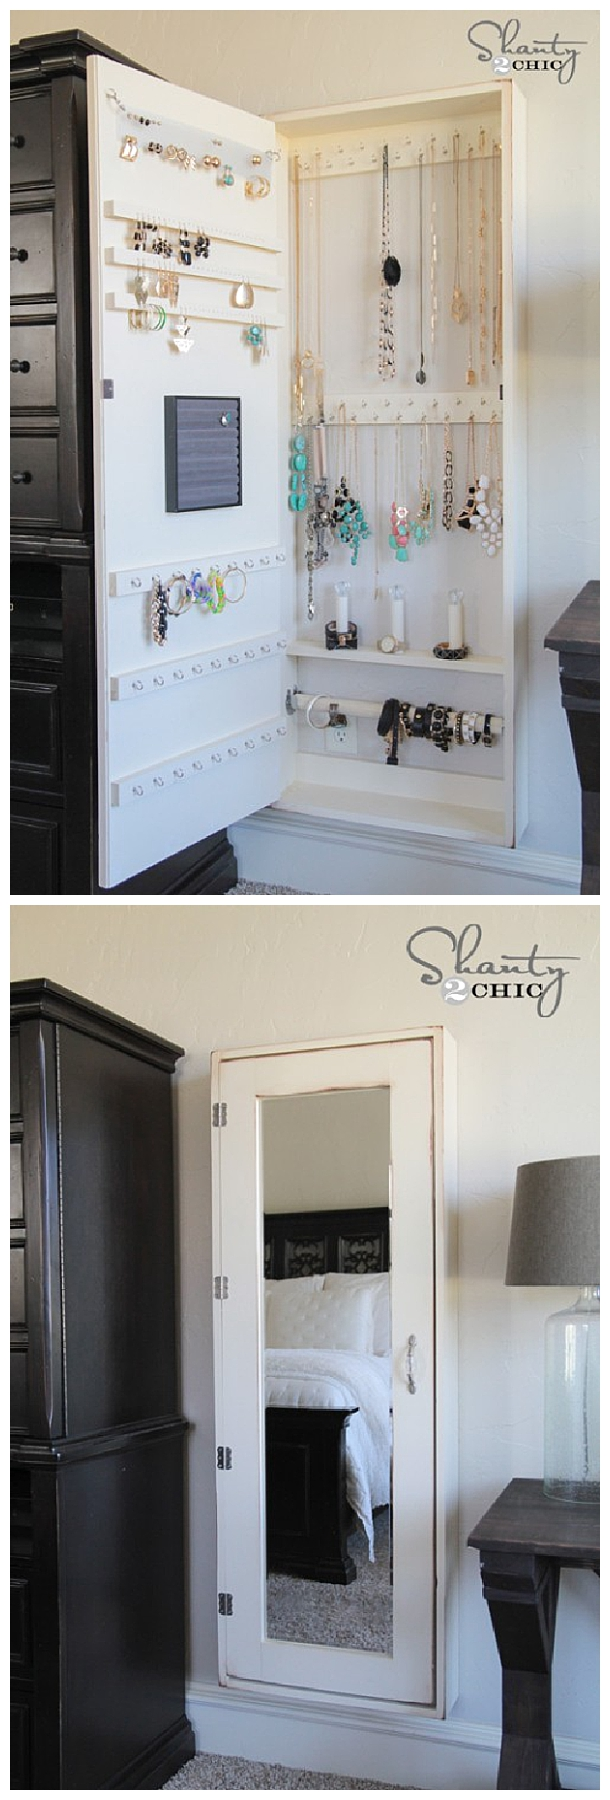 DIY Bathroom Organization Ideas - DIY Jewelry Organizer Cabinet and Full Length Mirror all in one - Step by Step Do it Yourself Tutorial via Shanty2Chic #bathroomorganization #bathroomideas #bathroomhacks #bathroomtips #organizethebathroom